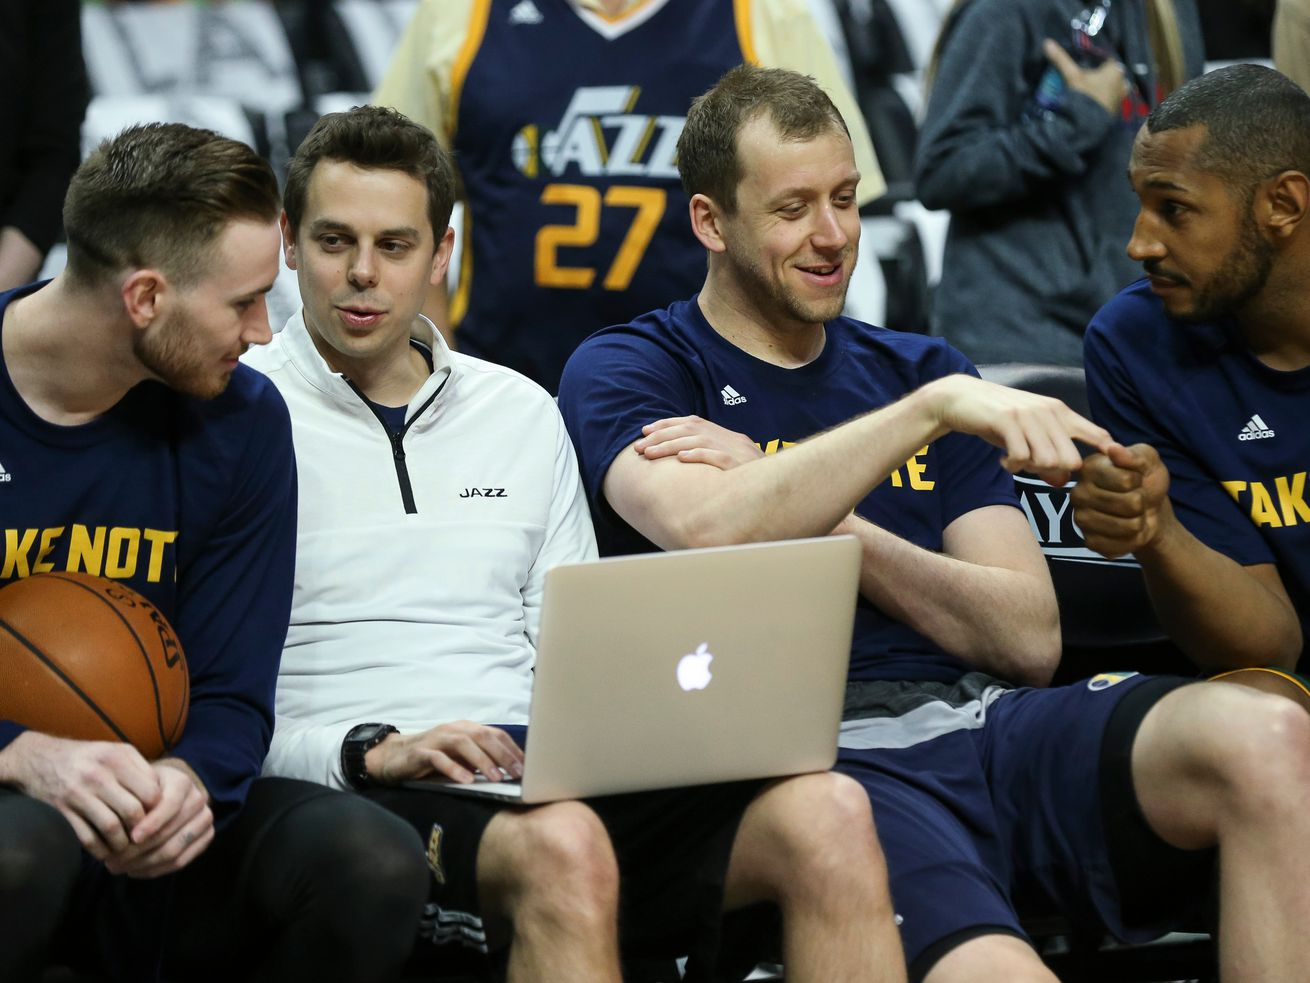 Utah Jazz forward Gordon Hayward (20), Jazz assistant coach Zach Guthrie, forward Joe Ingles (2) and center Boris Diaw (33) chat before Game 7 of the first-round NBA playoffs series between the Utah Jazz and Los Angeles Clippers at the Staples Center in Los Angeles on Sunday, April 30, 2017.